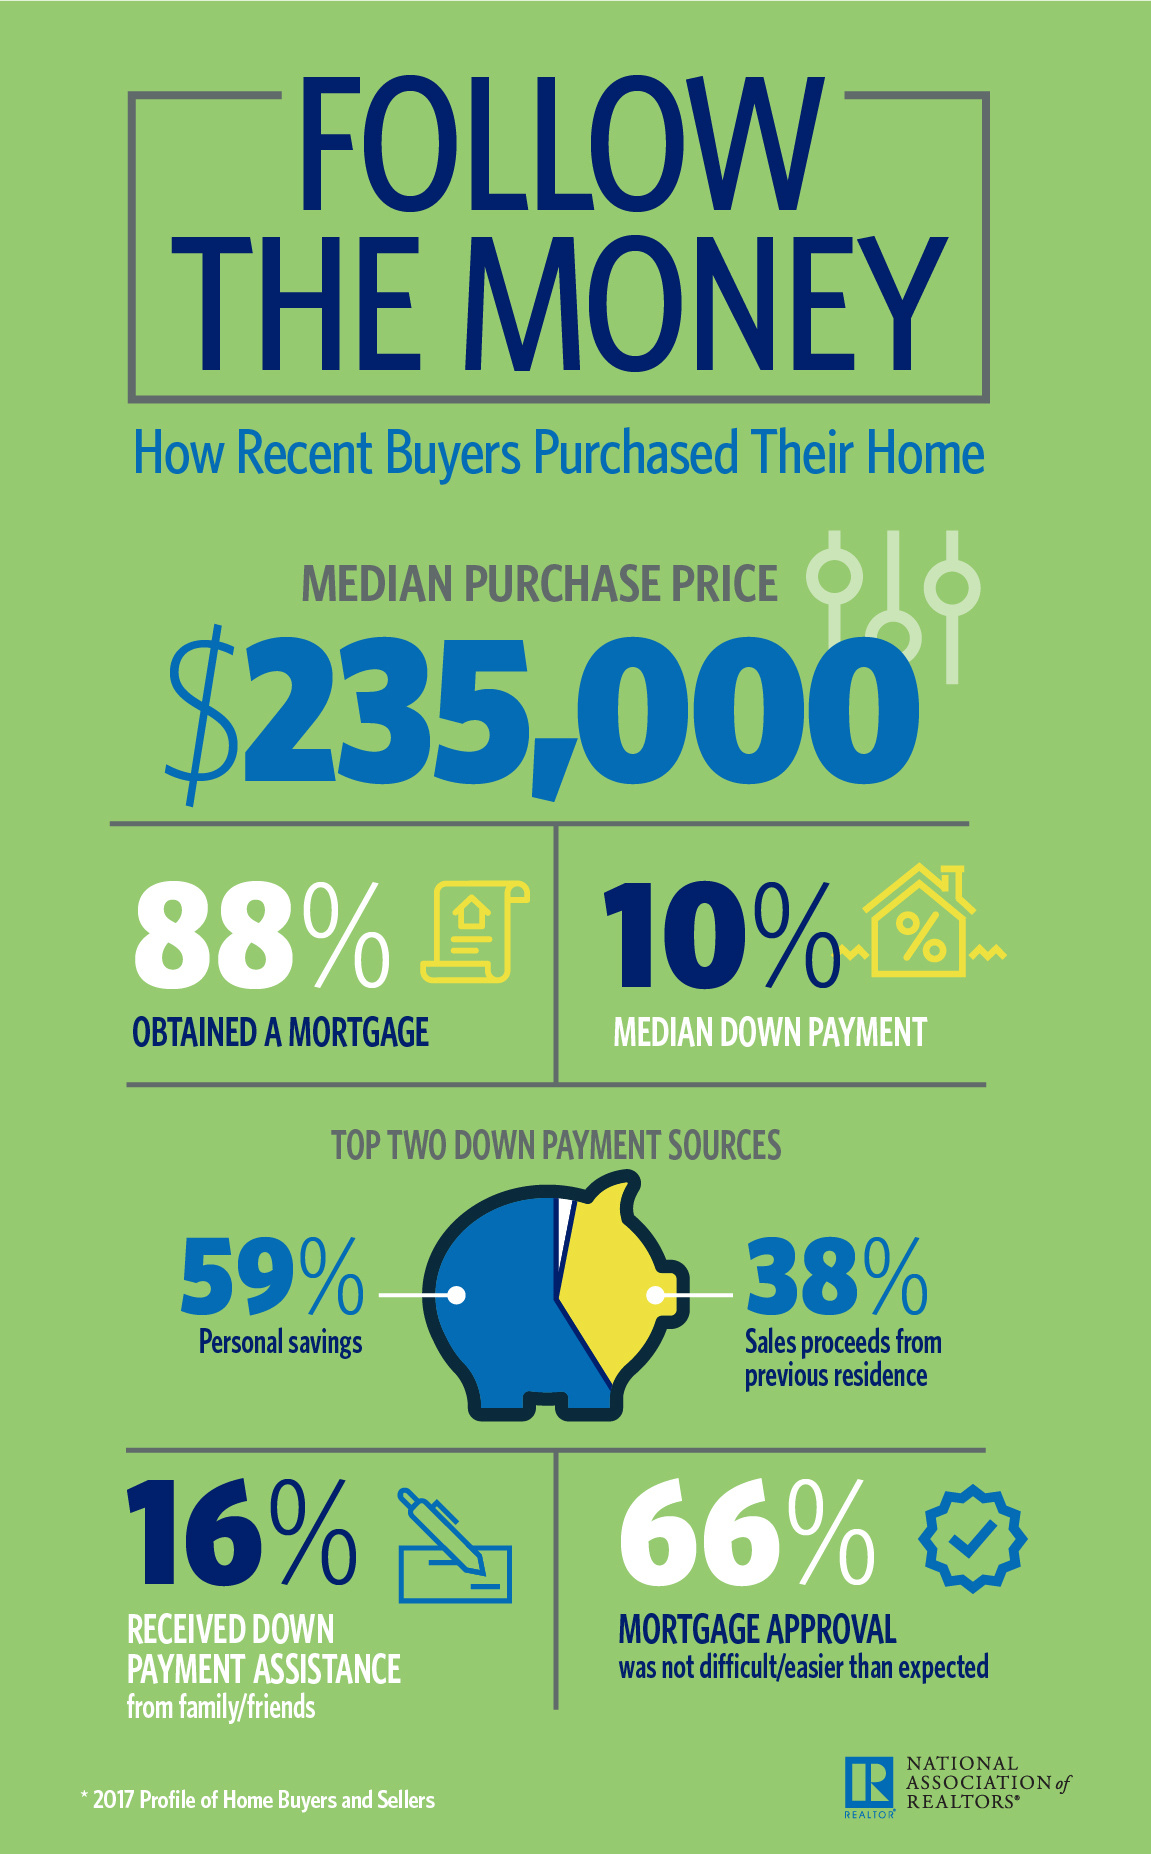 Infographic: Follow the Money: How Recent Buyers Purchased Their Home